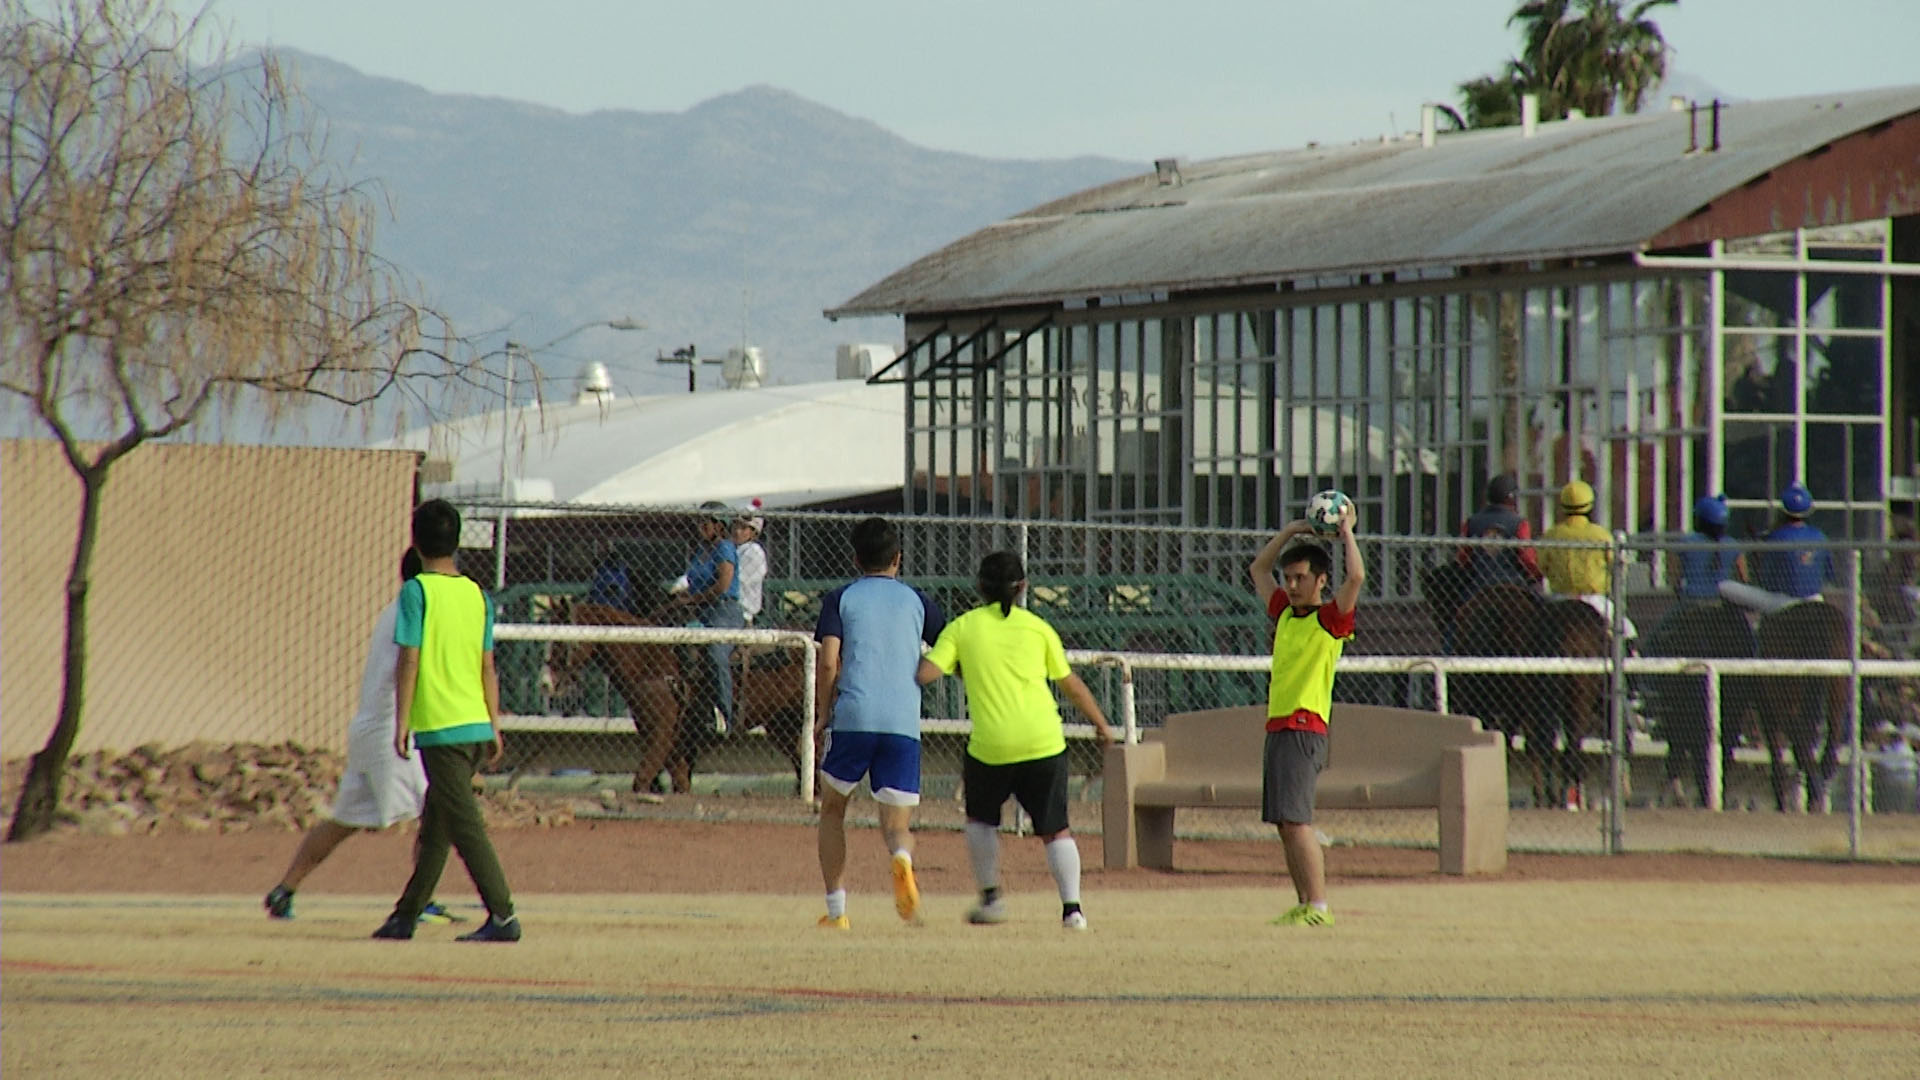 Soccer and horse racing co-exist at Rillito Park Racetrack.